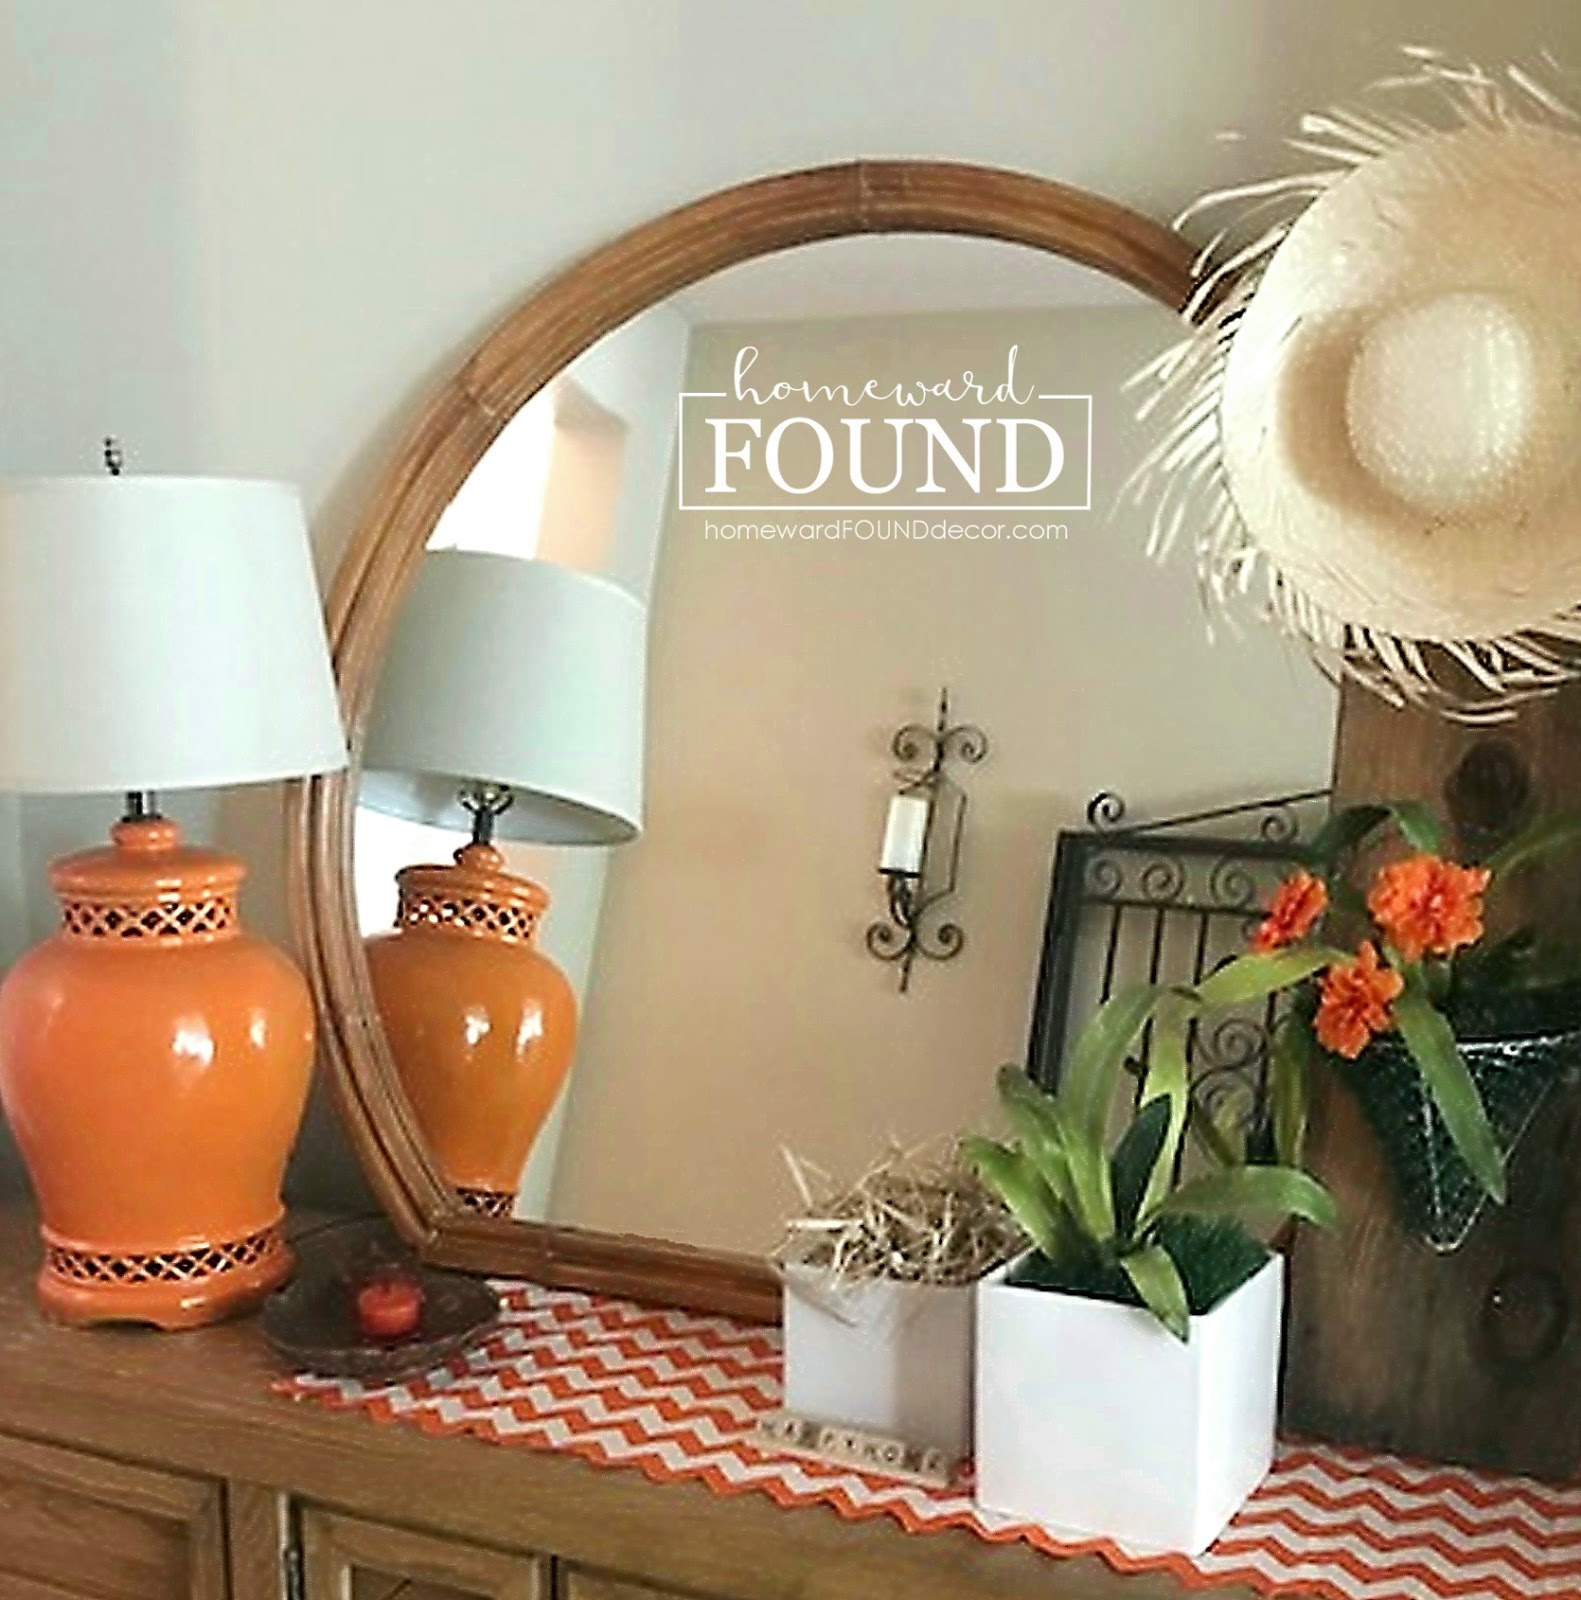 Faux bamboo mirror by Homeward Found, featured on DIY Salvaged Junk Projects 538 on Funky Junk!